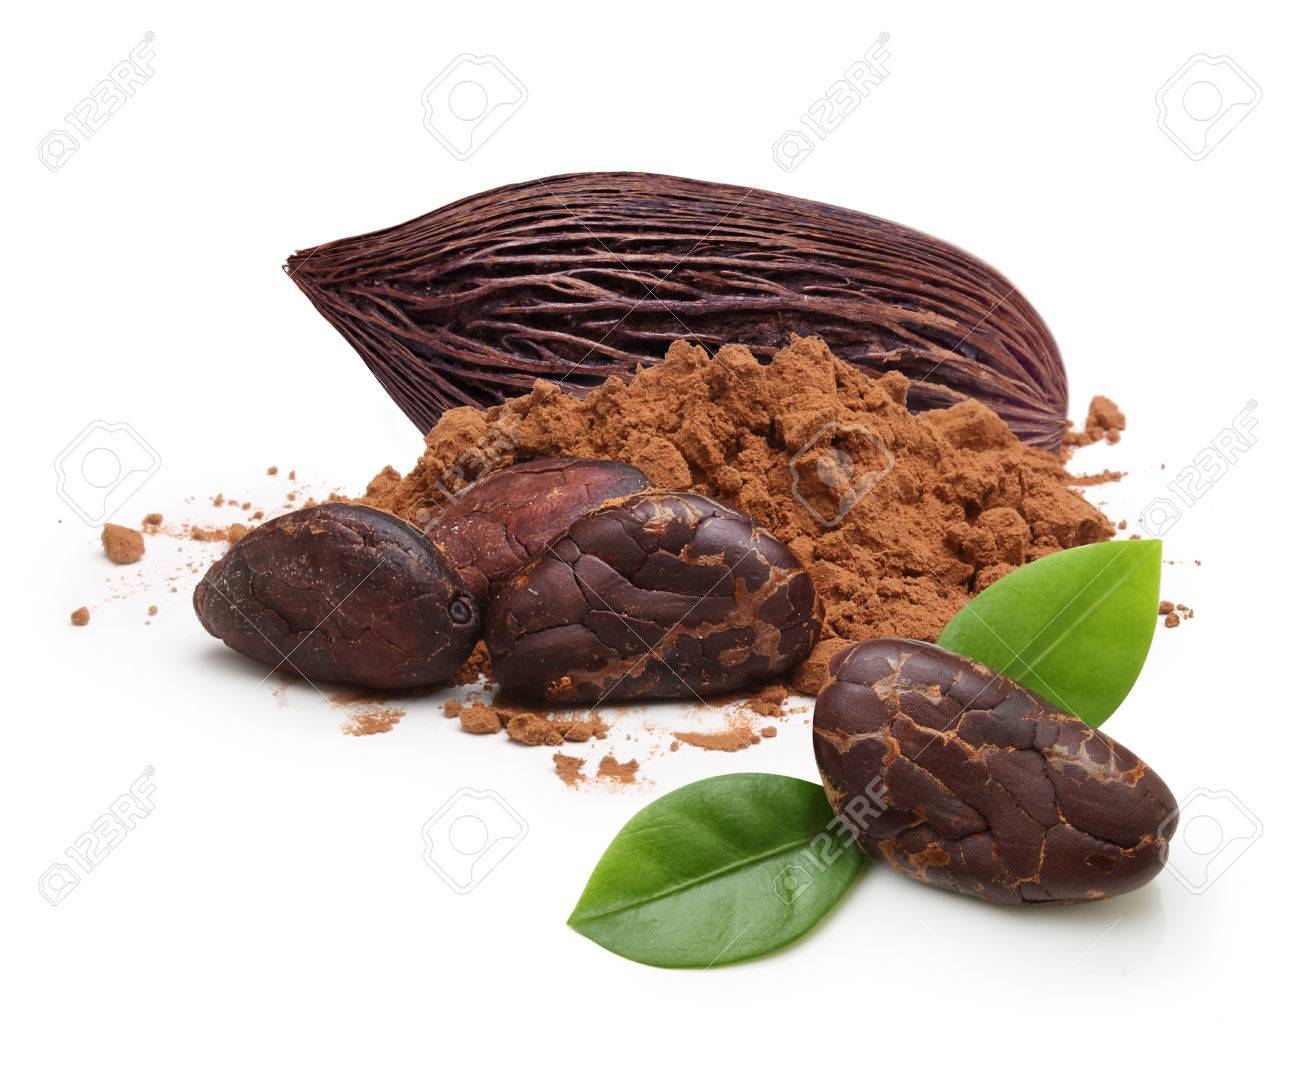 Cacao beans and powder isolated on white background - 63994902